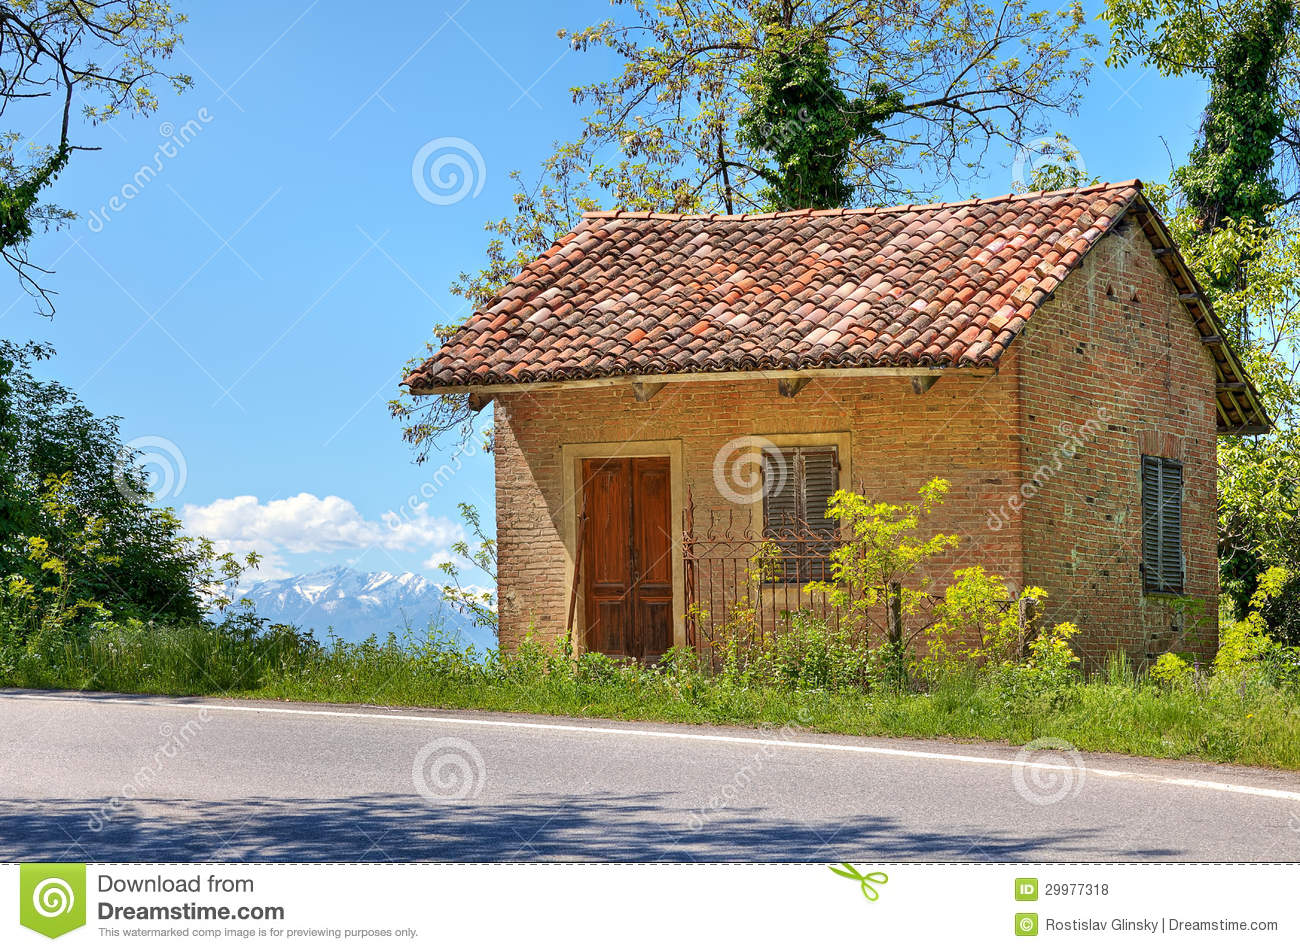 Annemarie also Massachusetts Oldest House besides Stock Images Collage Cottage Homes Image27749494 moreover 6be40ac37b9db46c Log Cabin Decor Log Cabin Bedroom Decorating Ideas as well A Woodland Garden. on small cottage house plans